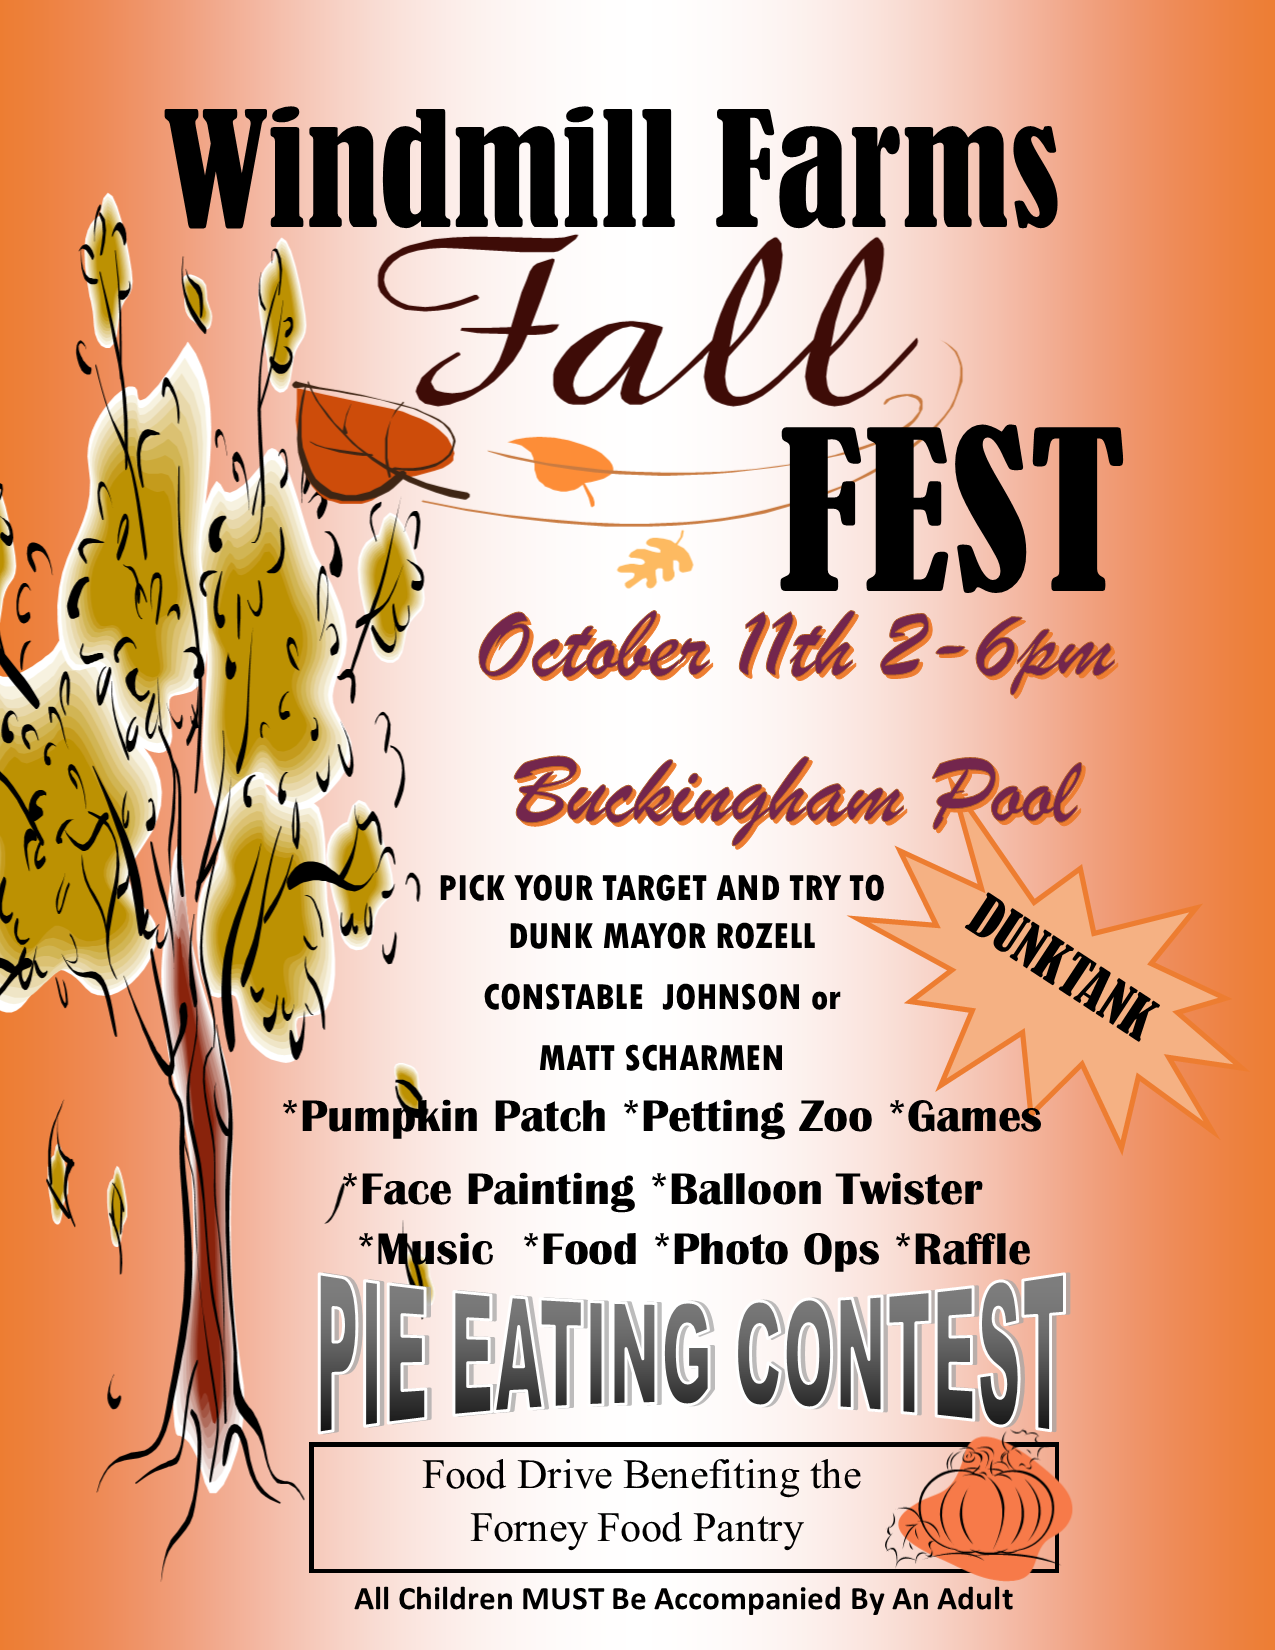 Windmill Farms HOA - 2014 Fall Fest